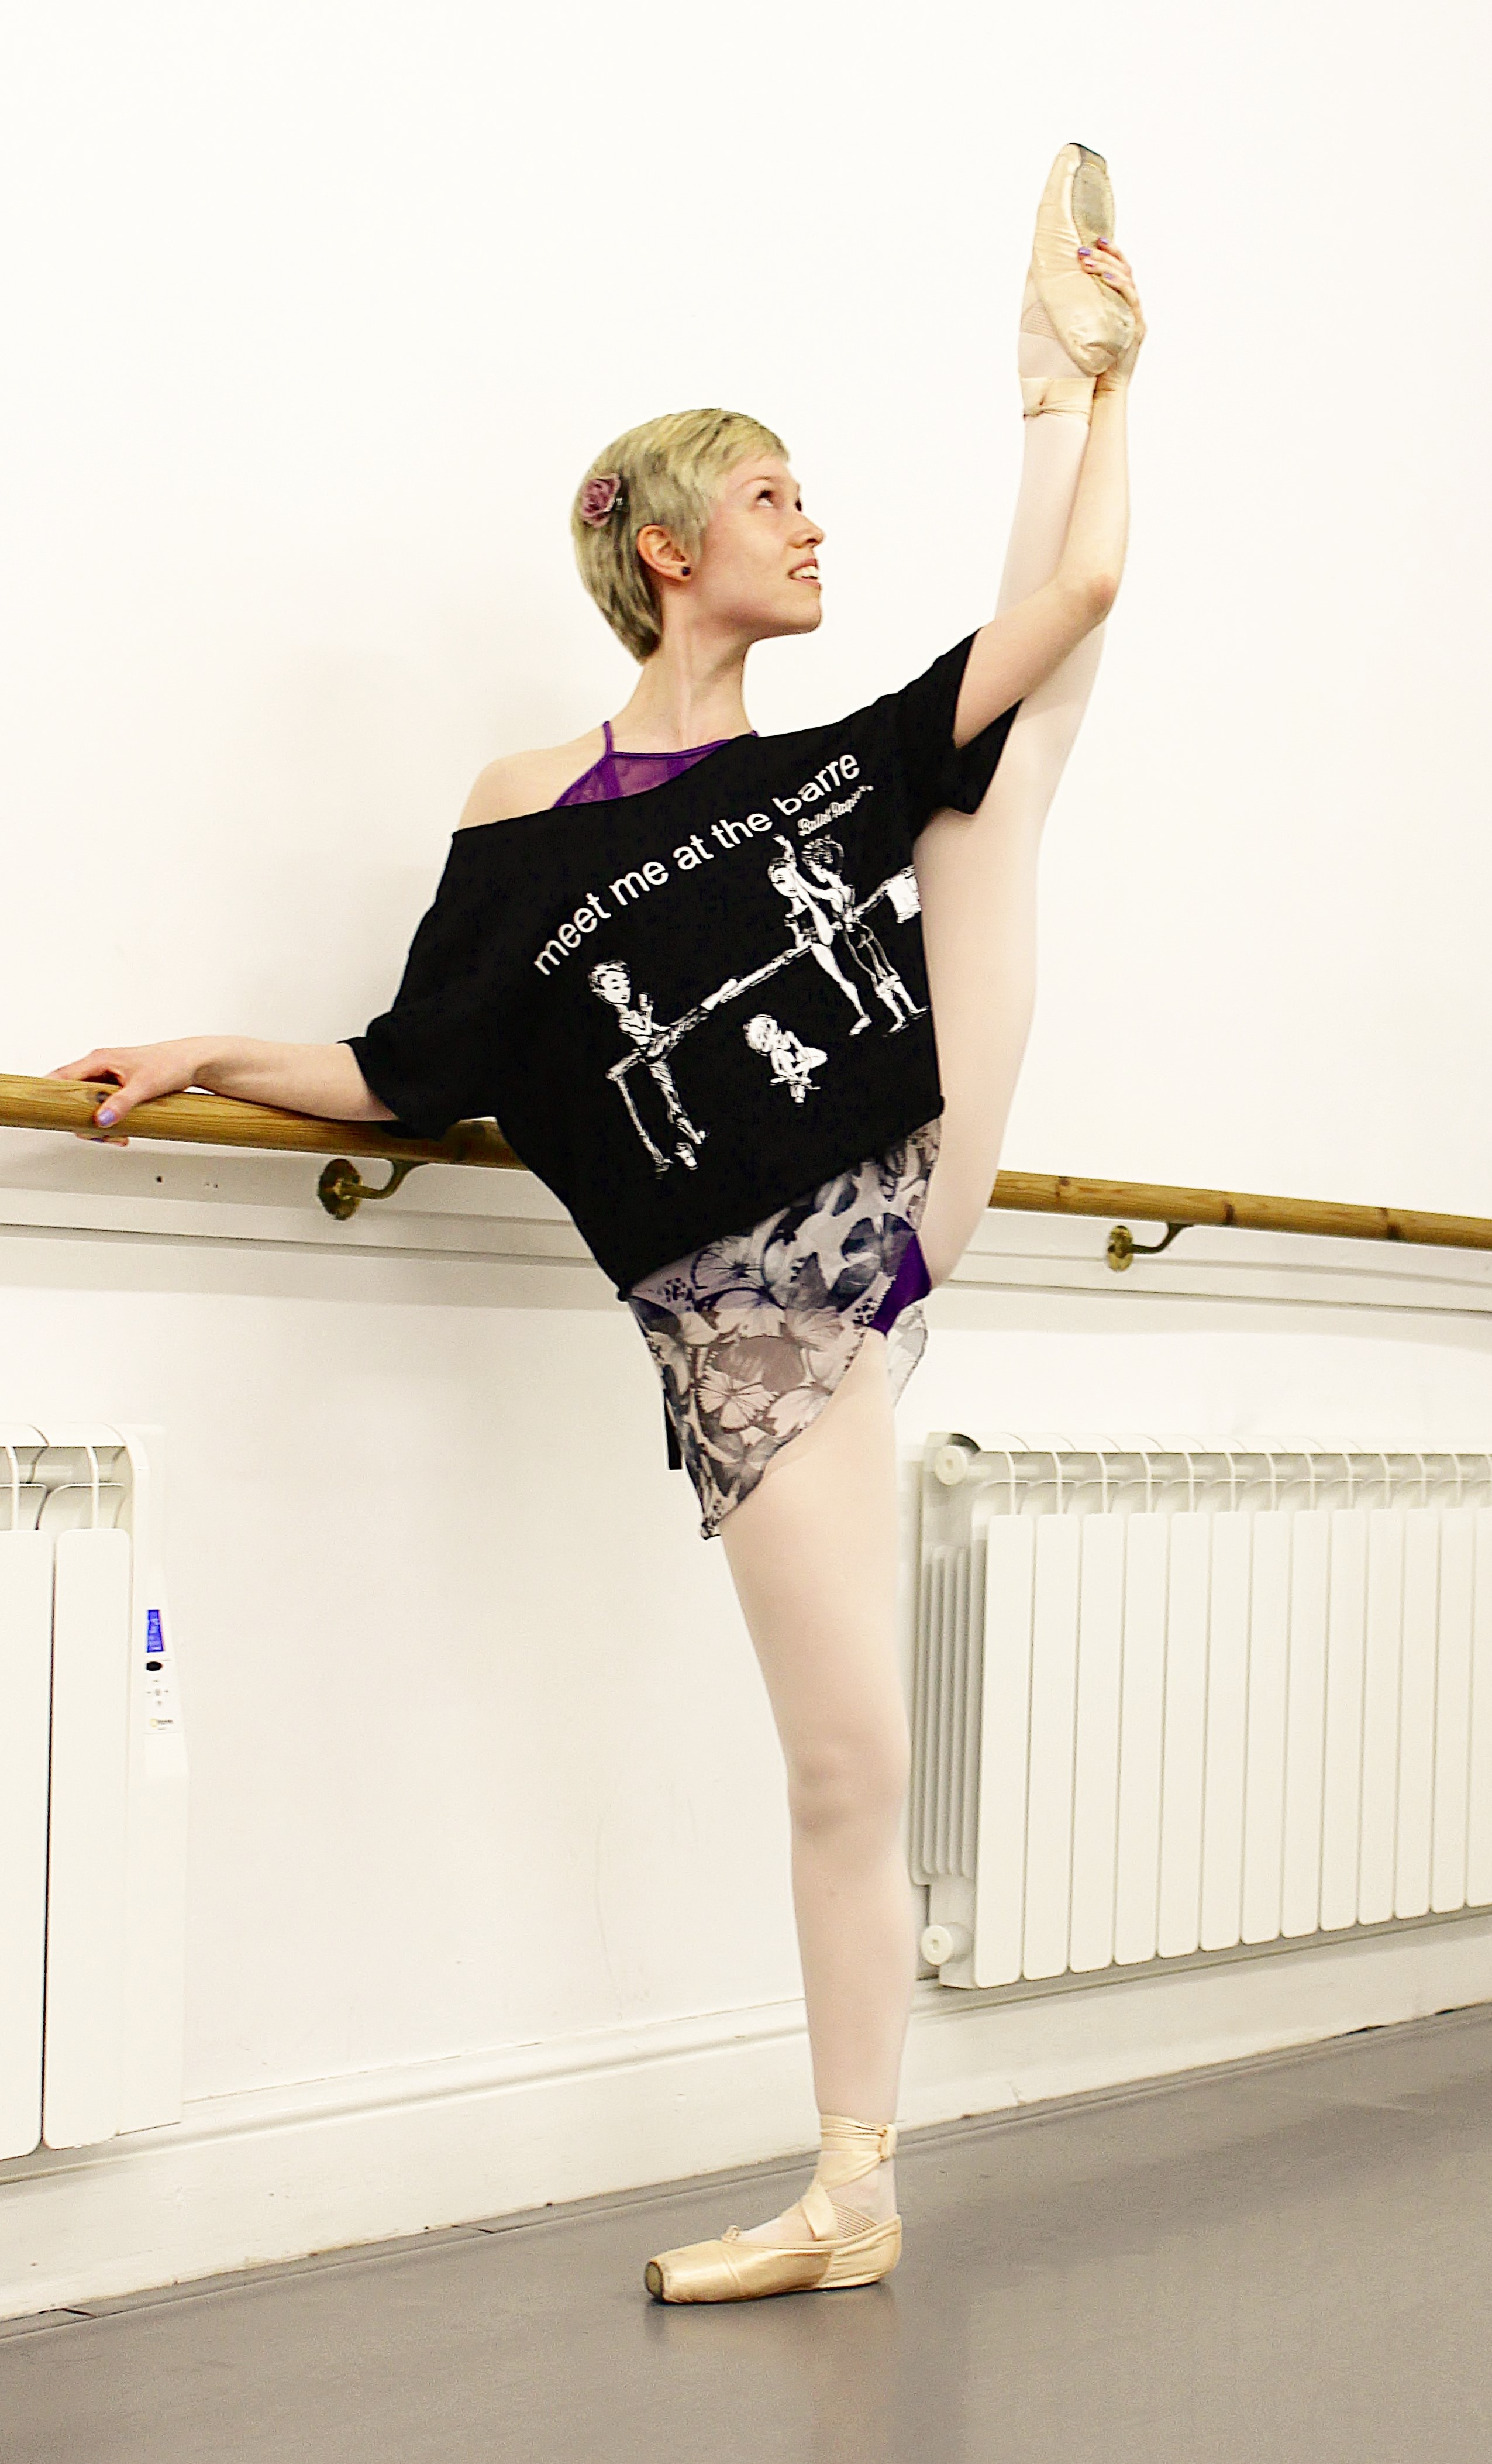 Georgina Butler wearing the black 'Meet Me At The Barre' T-shirt by Ballet Papier. Georgina is wearing the T-shirt over her ballet practice leotard and skirt. She is standing at a ballet barre in a dance studio, with her right hand gently resting on the barre and pointe shoes on her feet. Her left leg is stretched out to the side, high in the air, in a développé à la seconde.